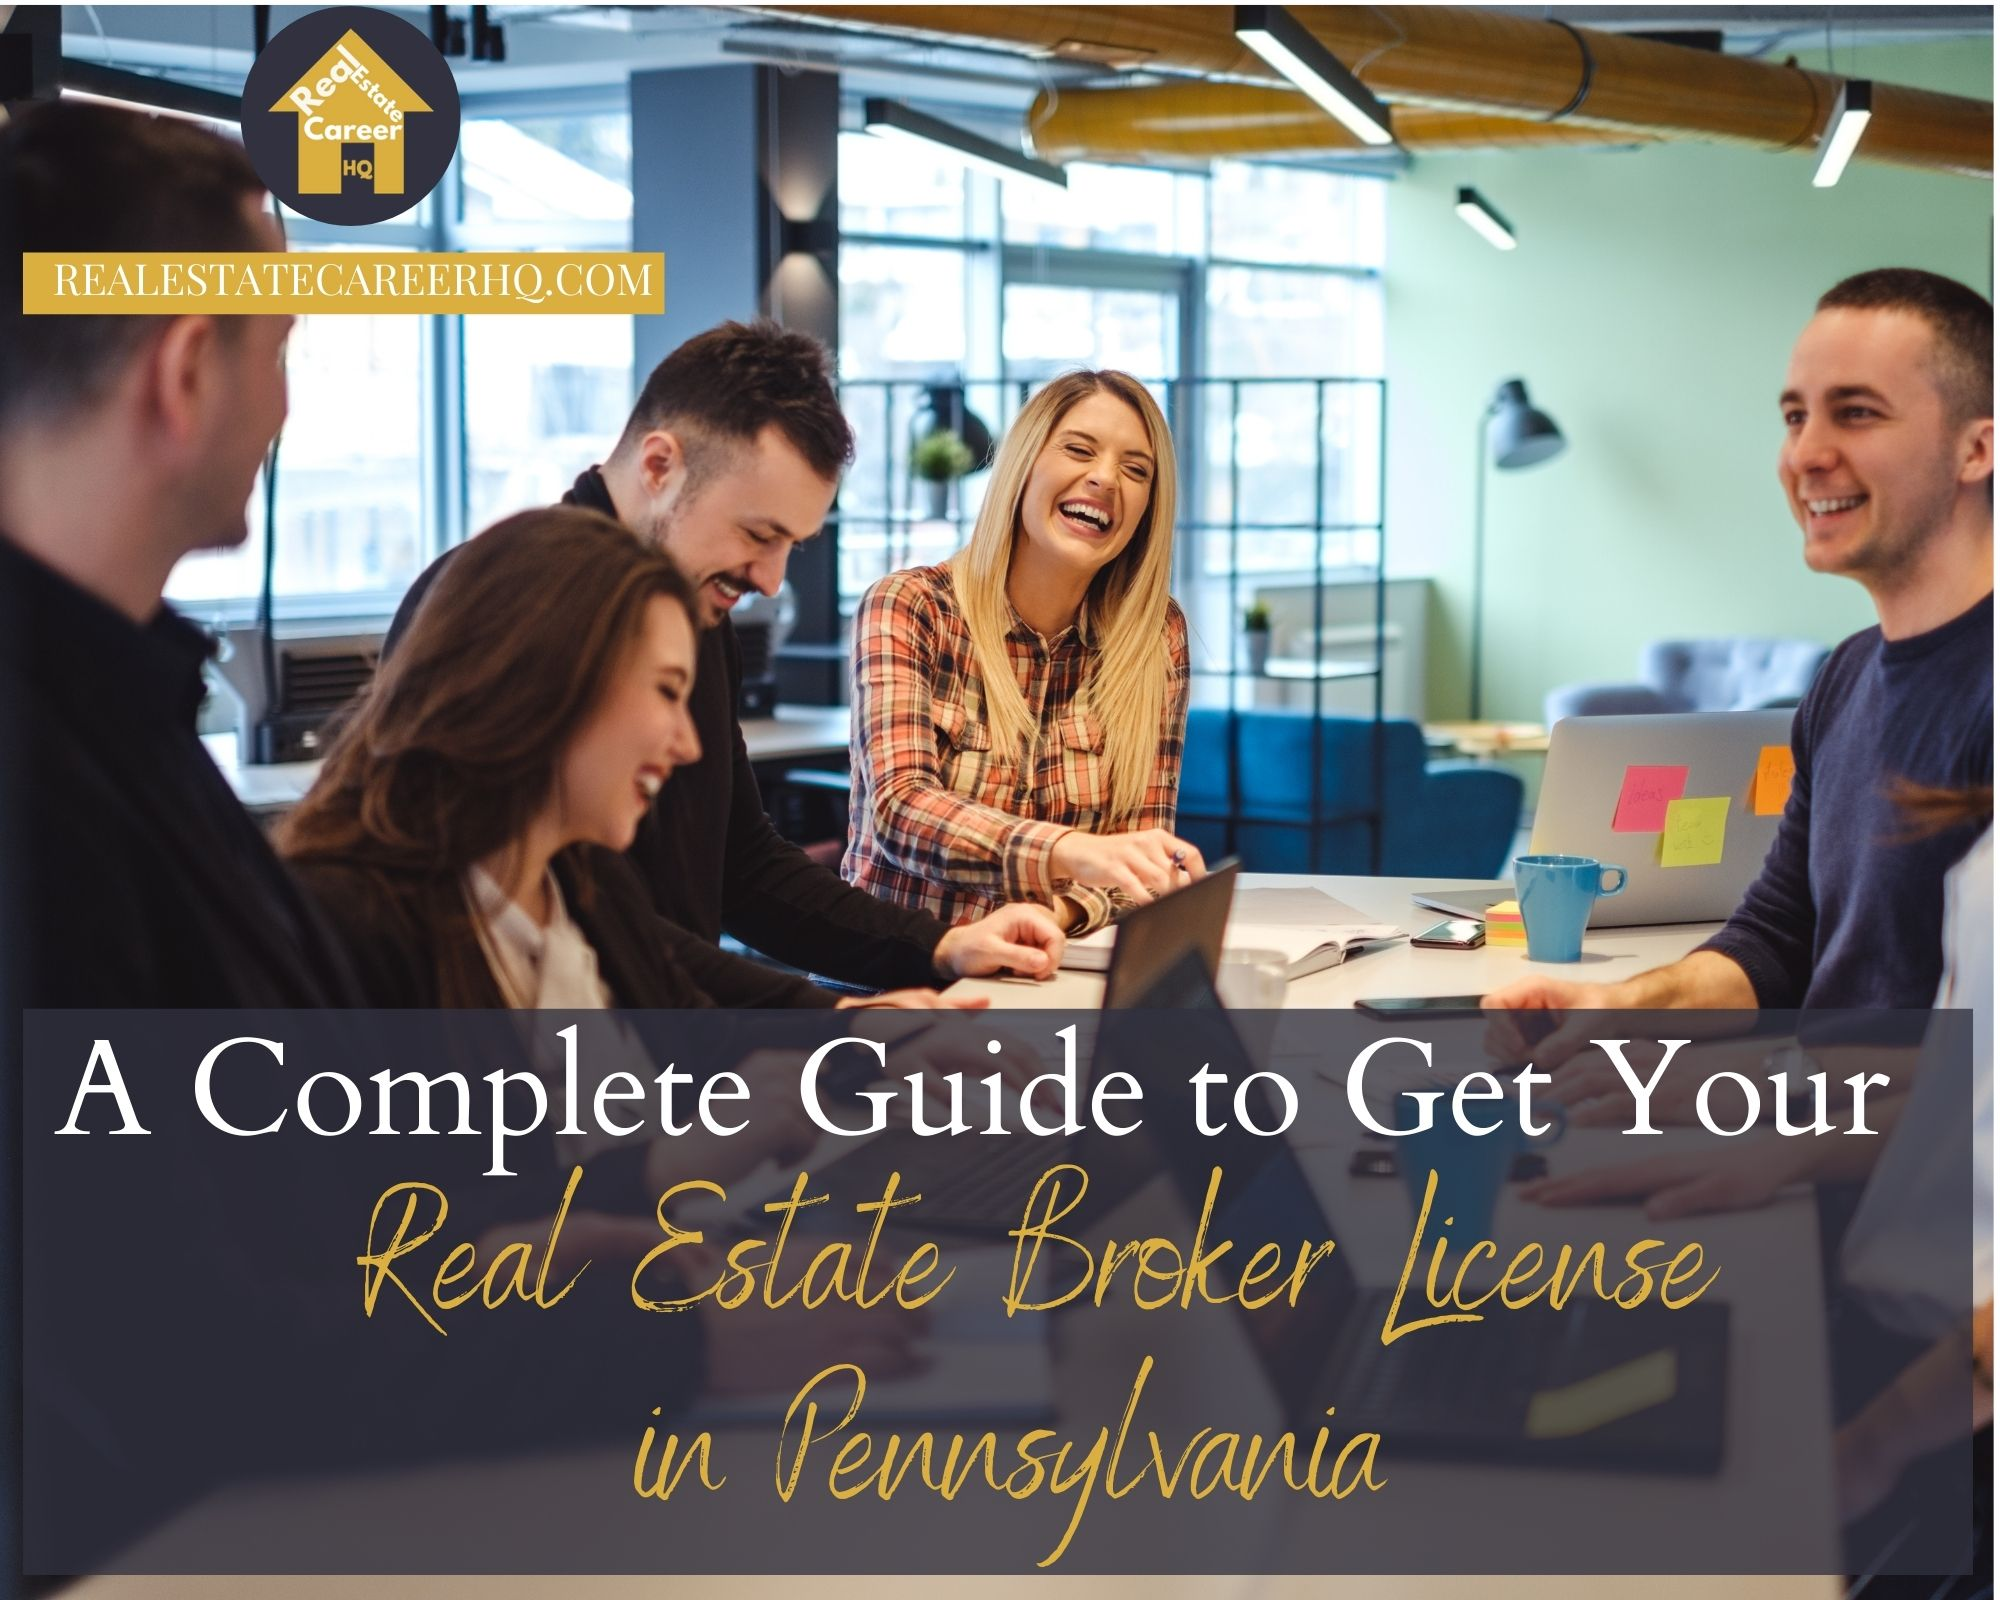 How to become a real estate broker in Pennsylvania?